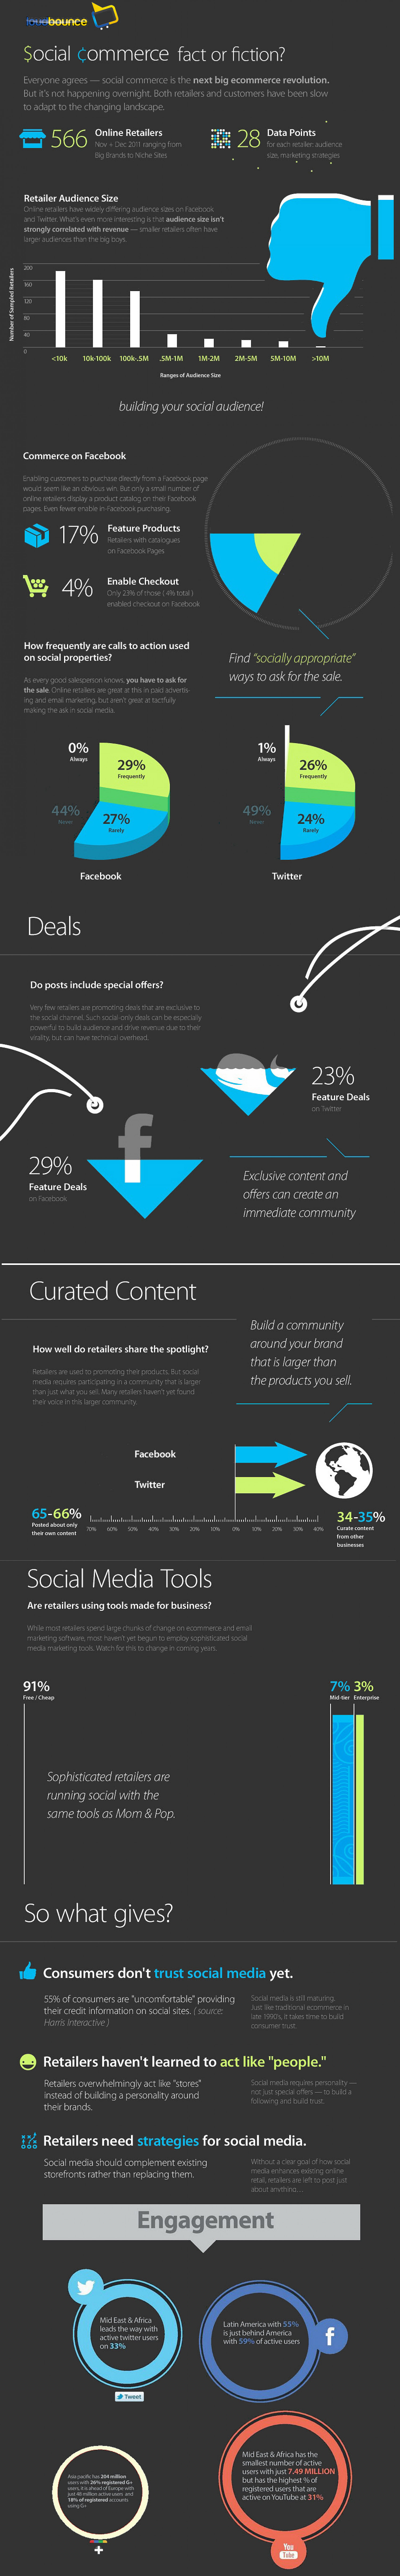 Social Commerce Truths Infographic